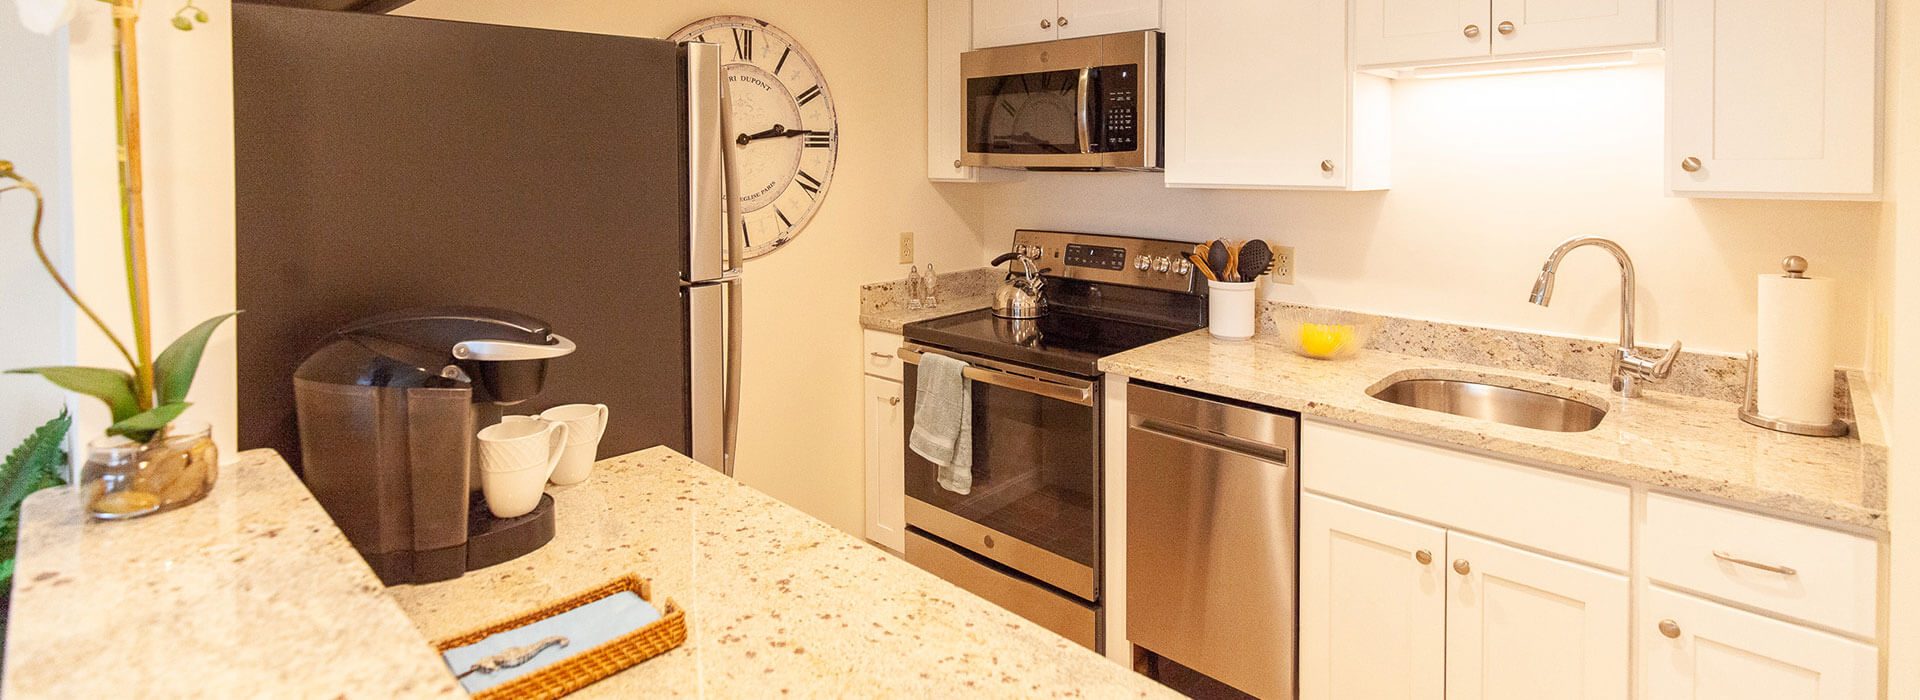 thirwood place model apartment kitchen